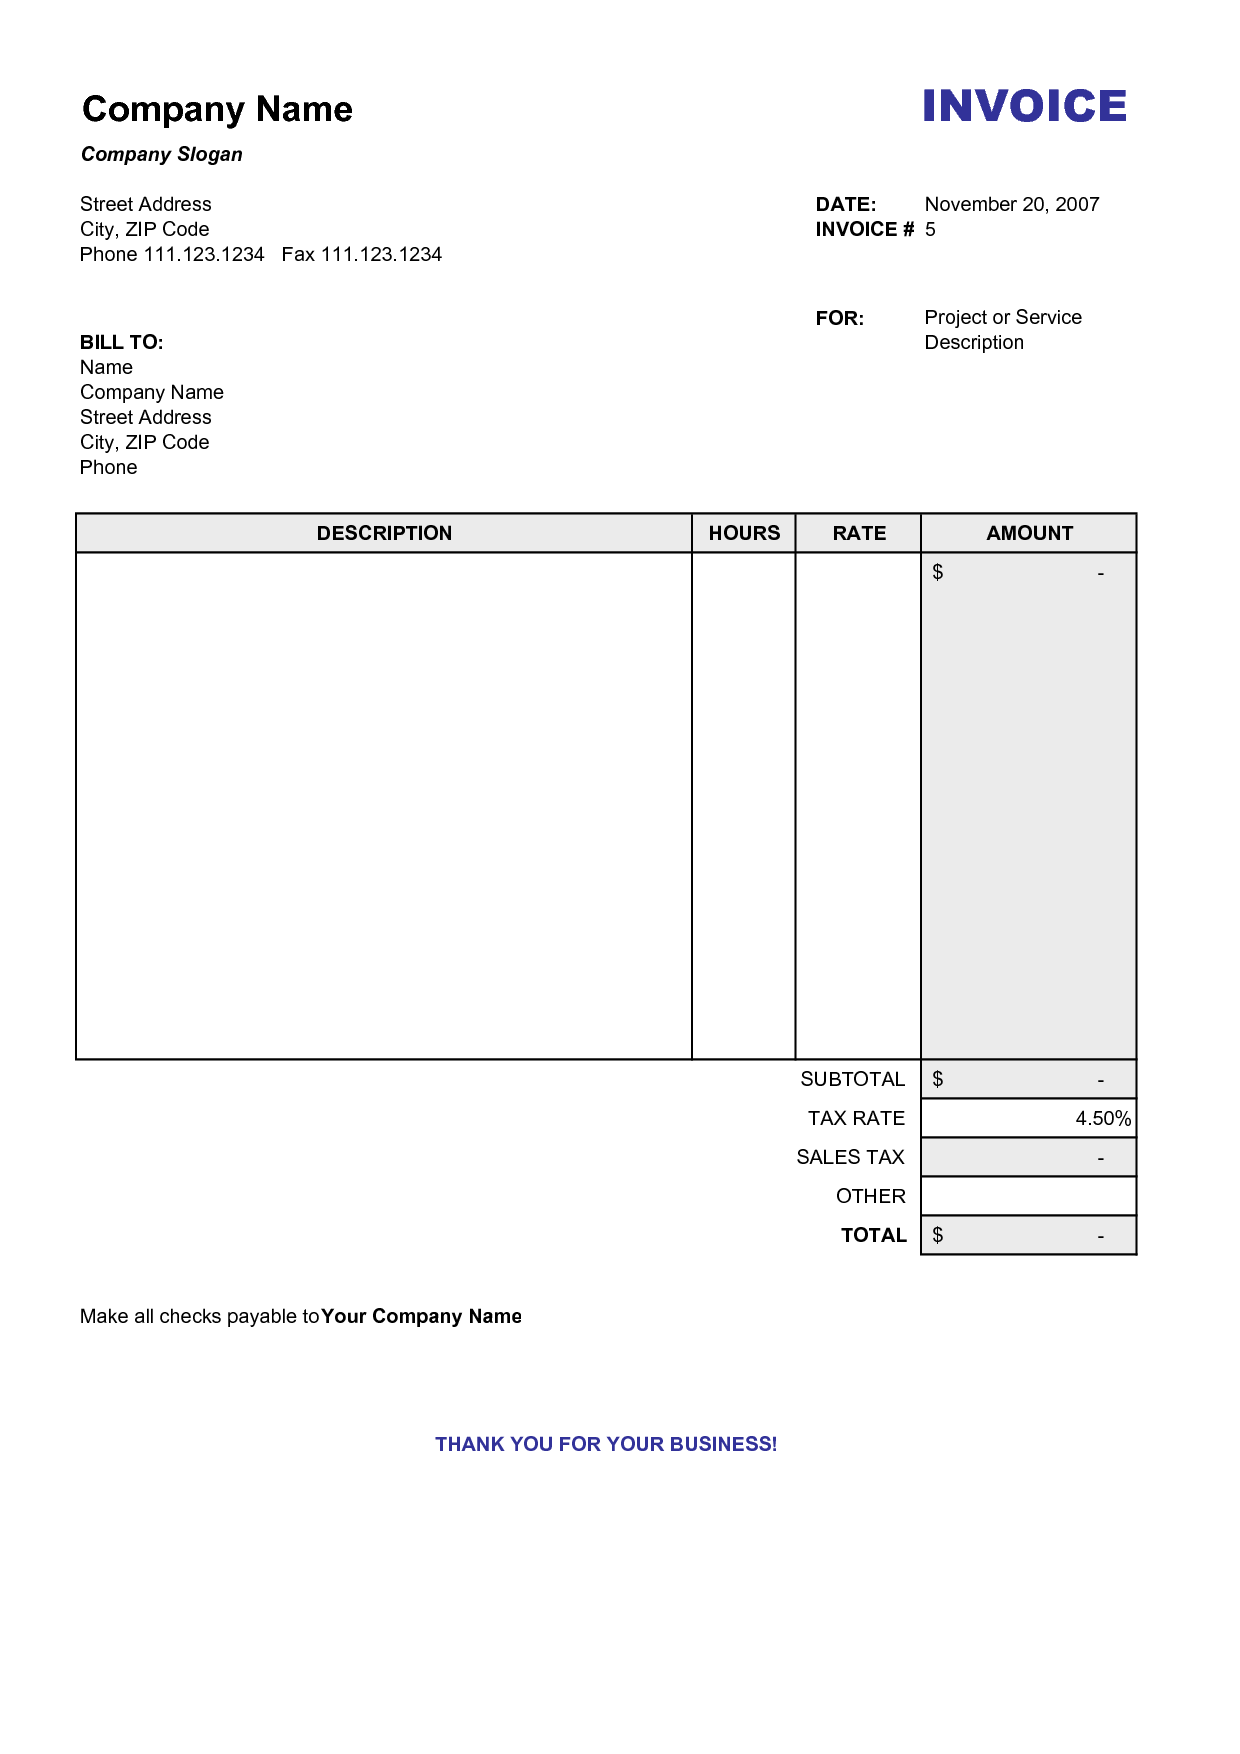 Blank Printable Invoice Template and Blank Billing Invoice Scope Of Work Template organization